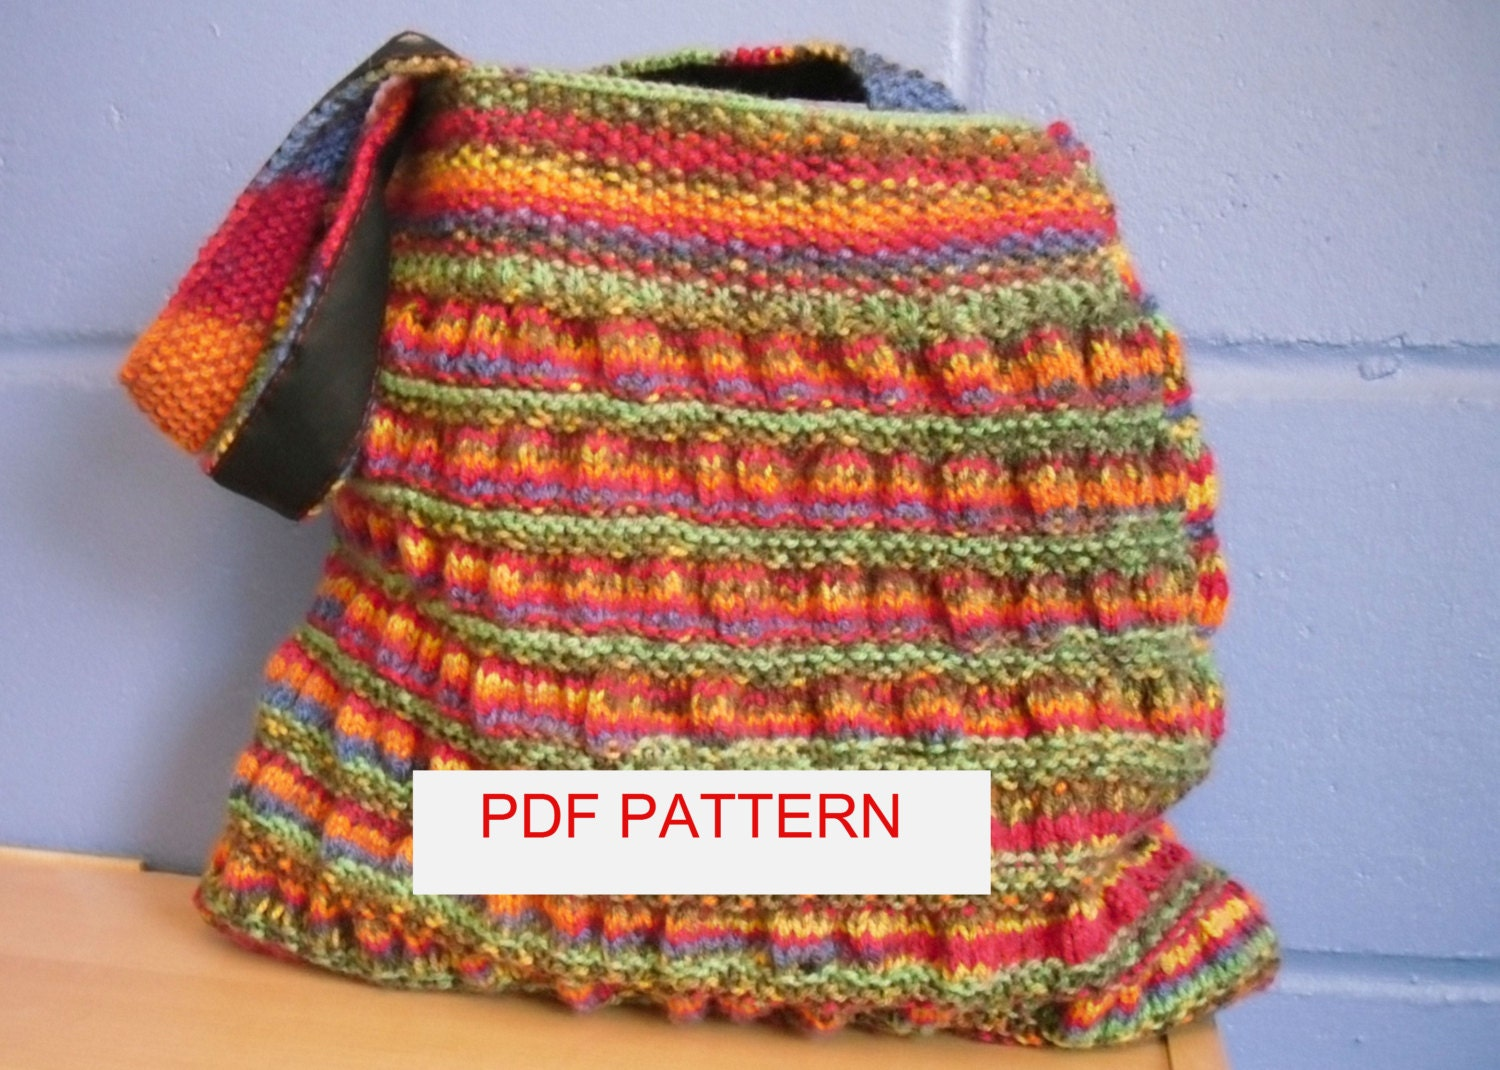 Knitted Tote Bag Pattern : Knitting Pattern Gathered Tote Bag.